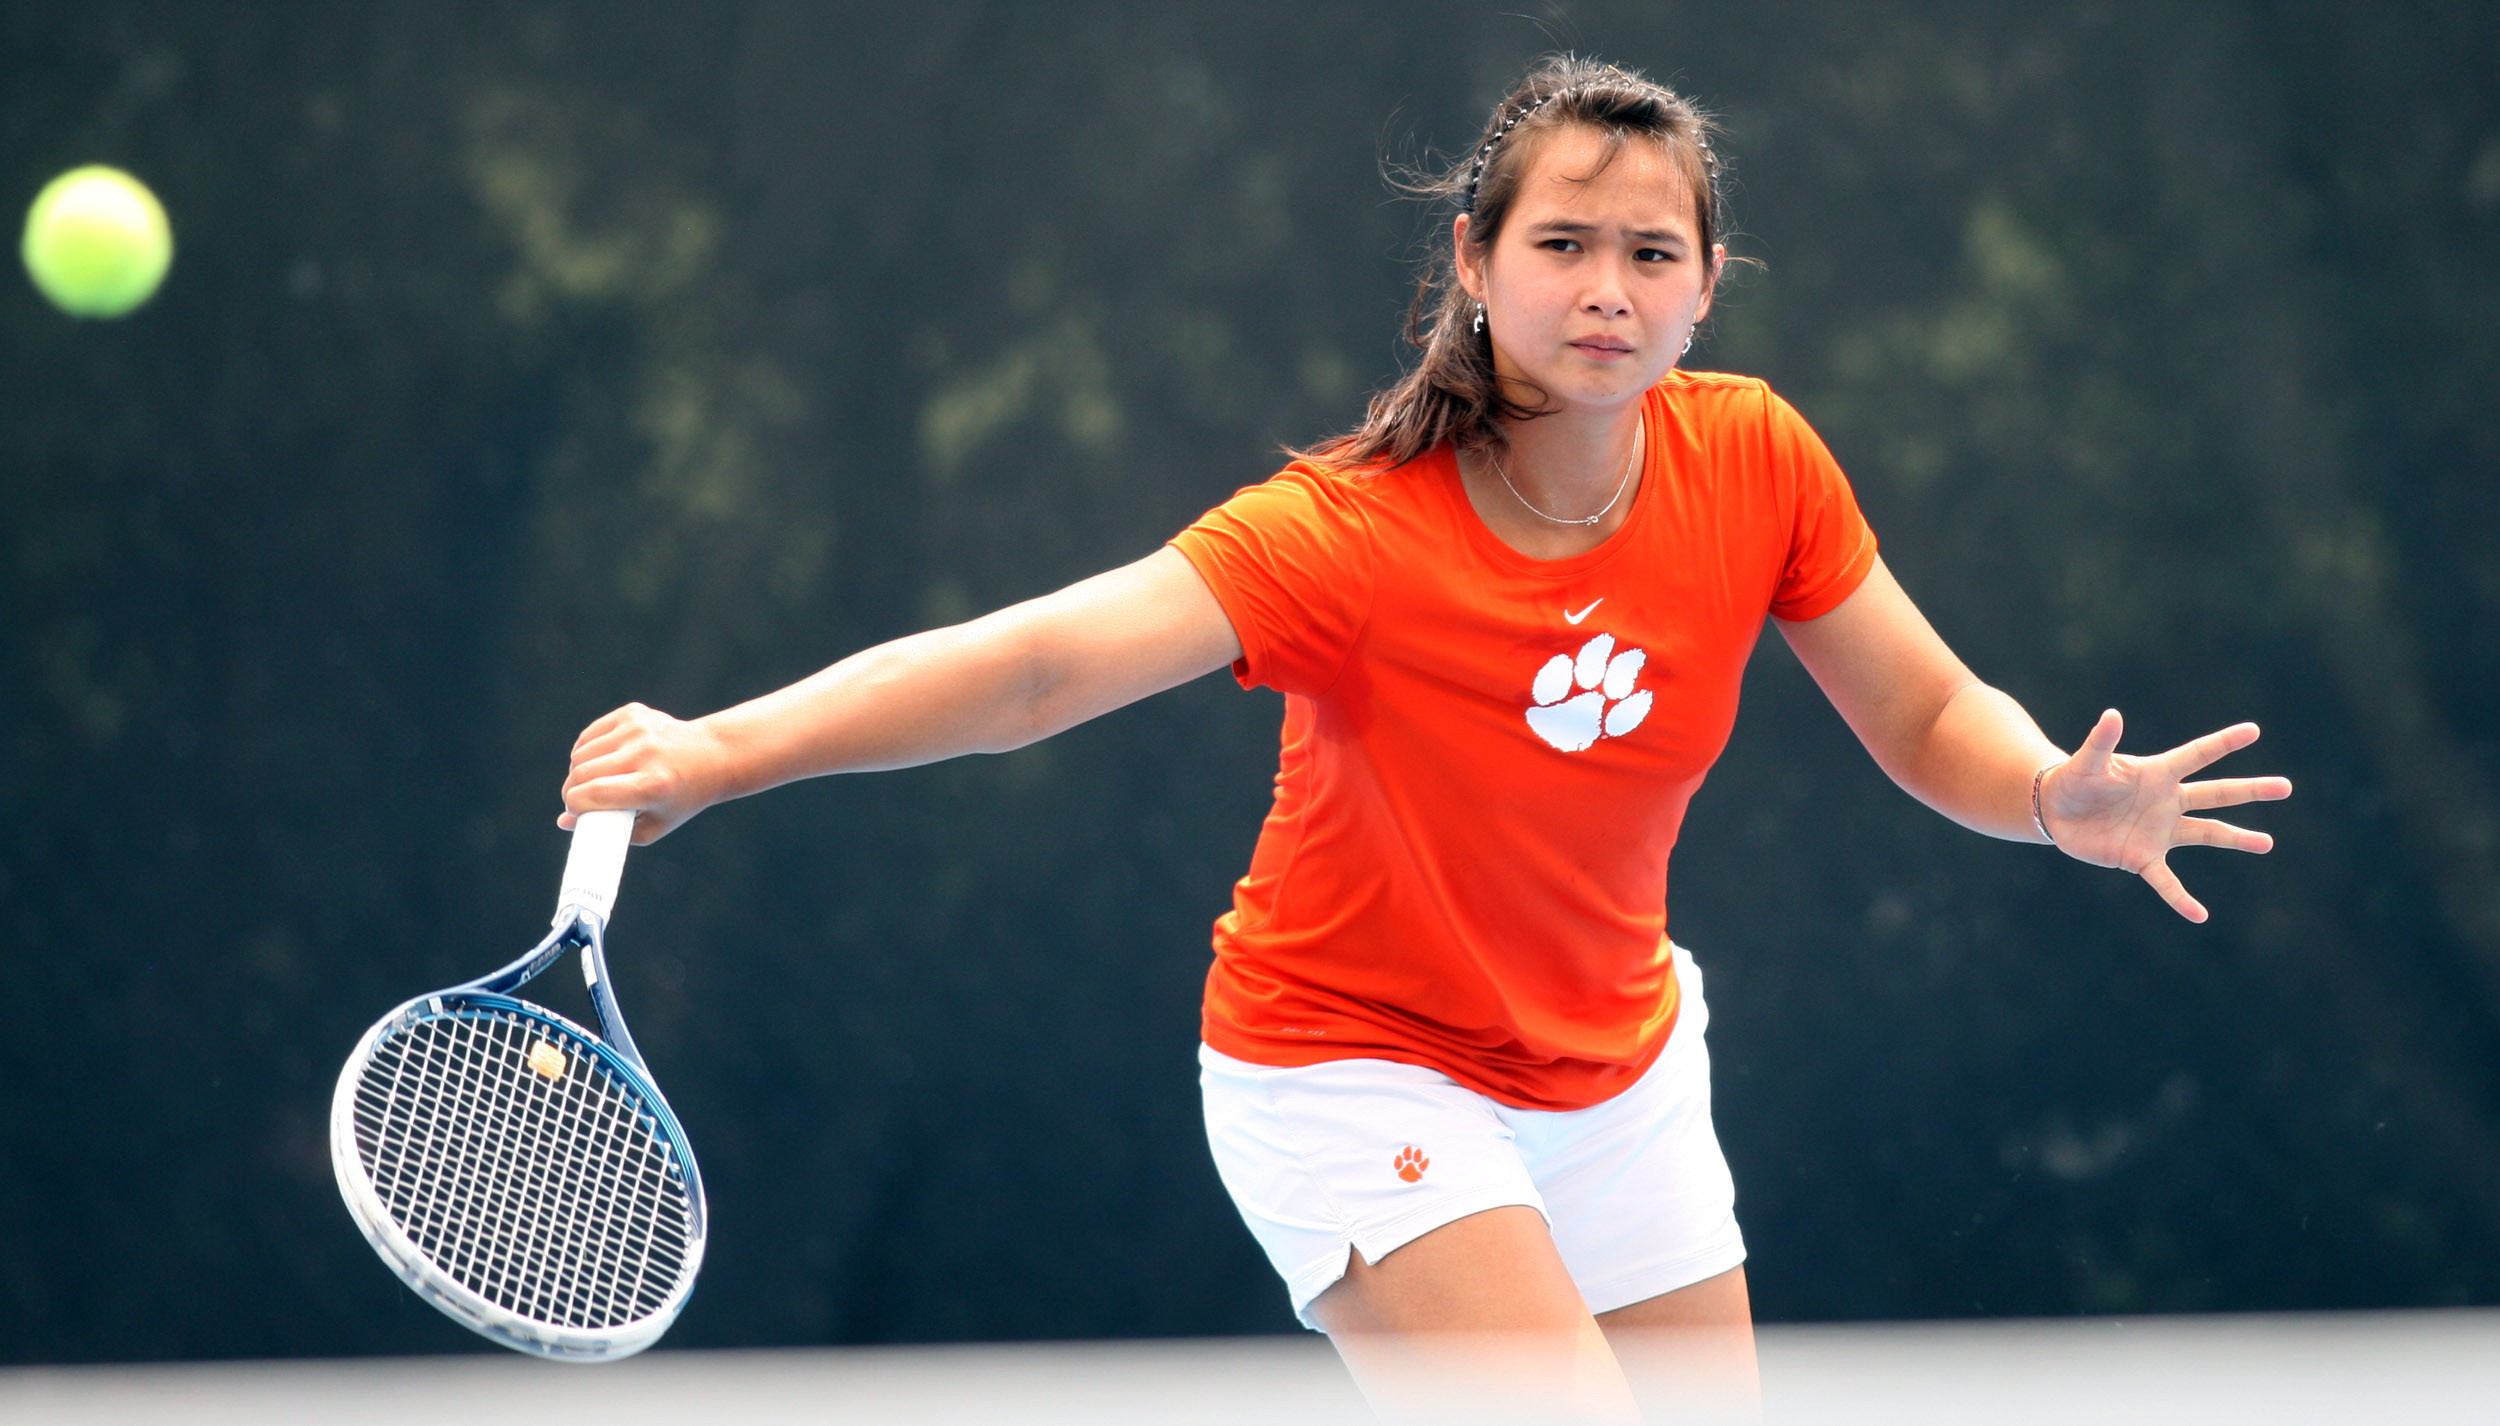 @ClemsonWTennis Advances to #ITAKickoff Second Round